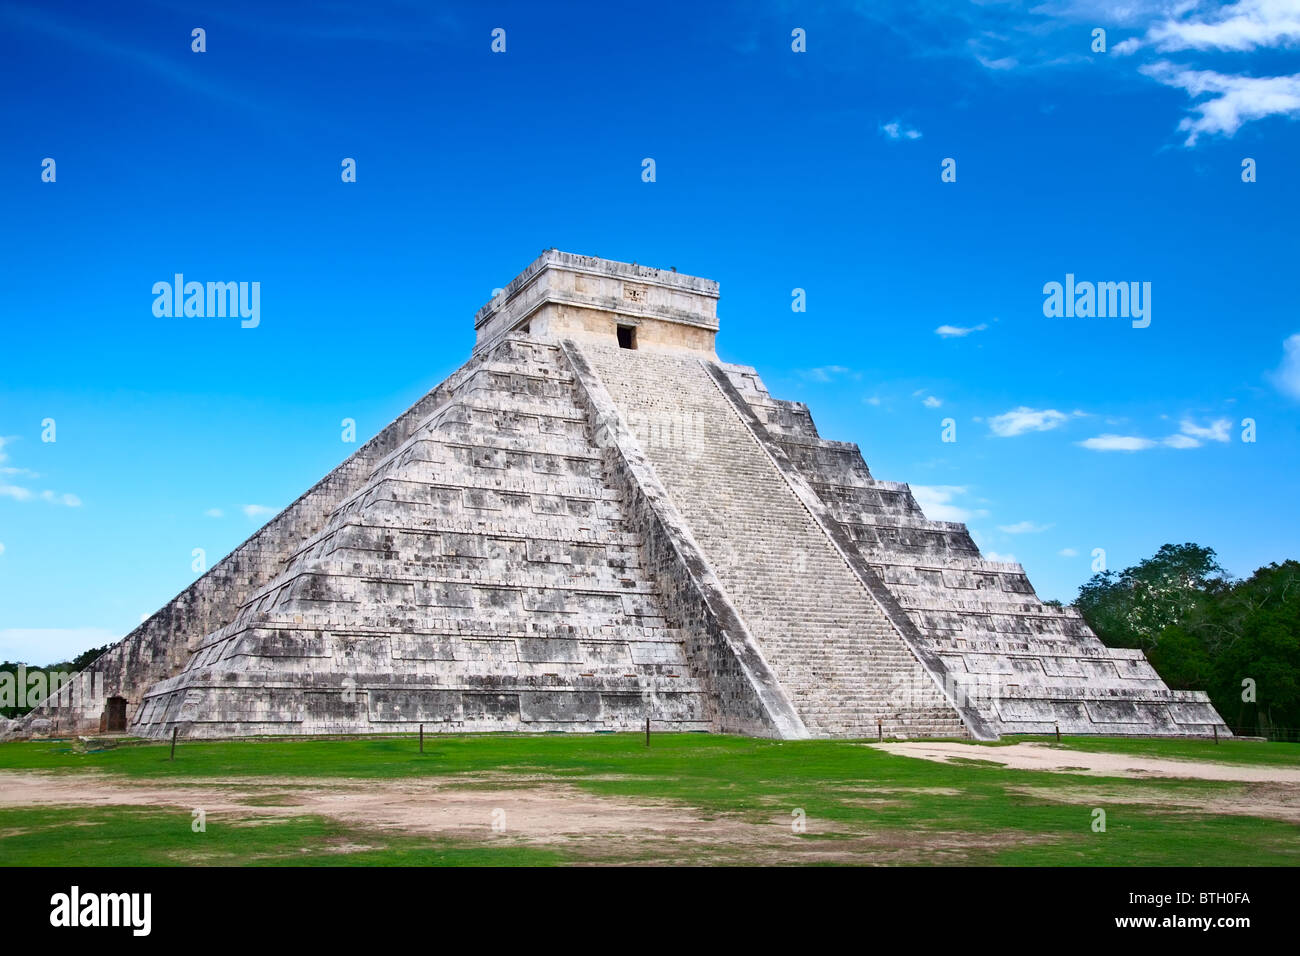 Chichen Itza, Mexico, one of the New Seven Wonders of the World - Stock Image